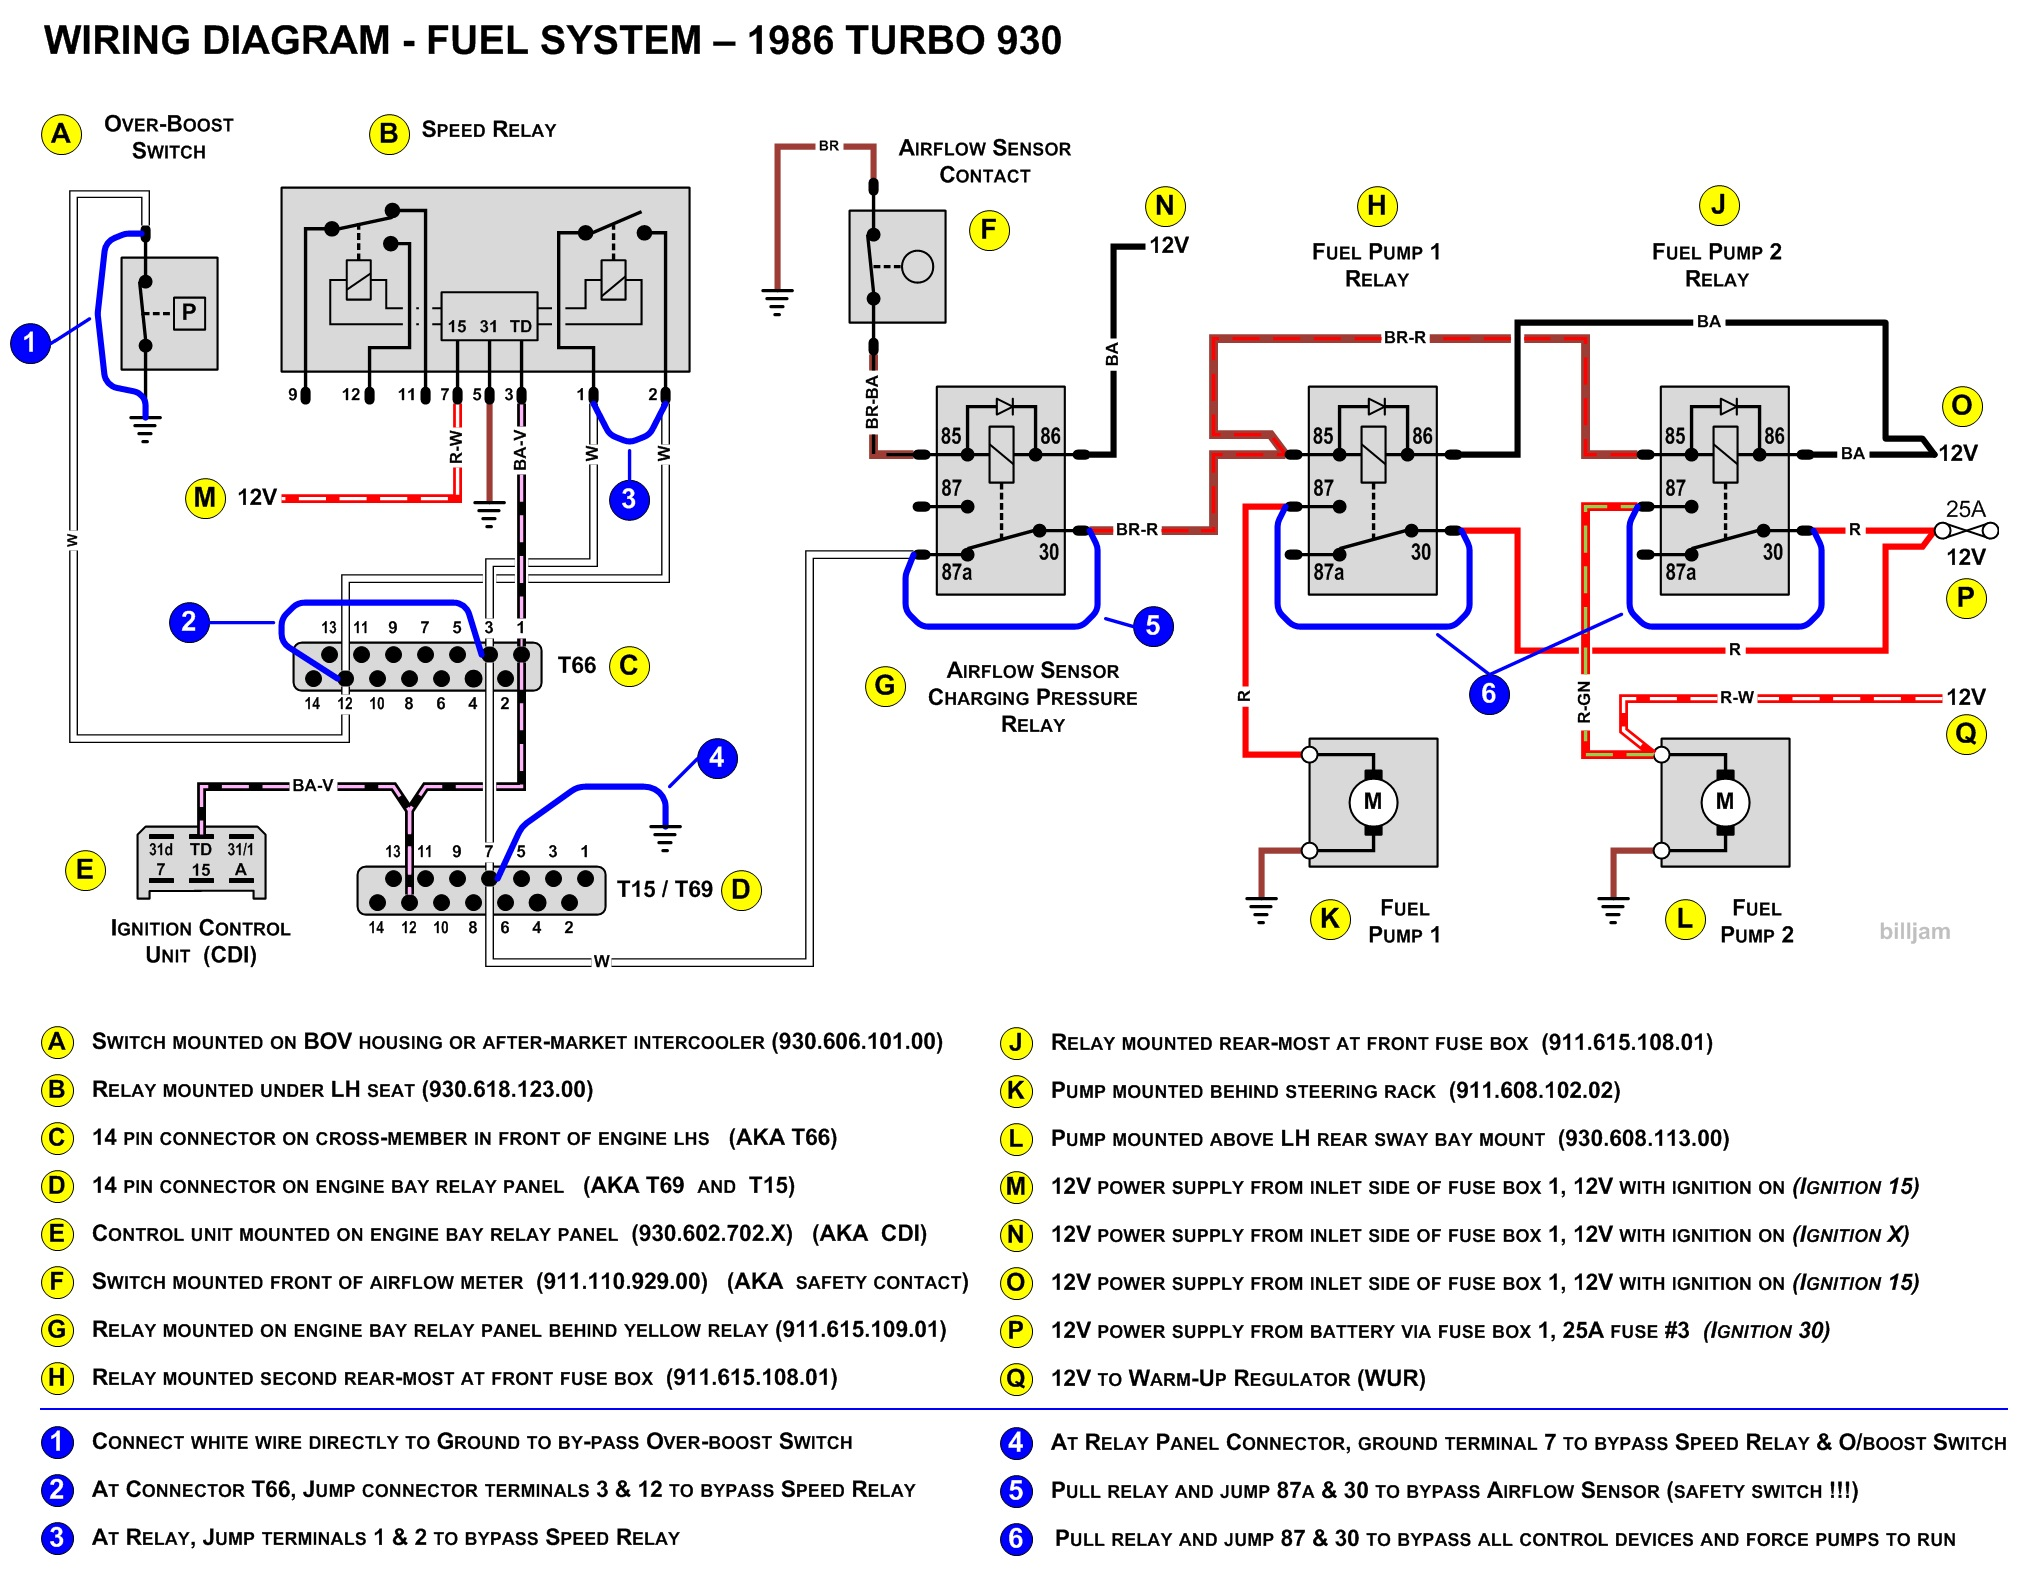 porsche 930 engine and transmission diagrams trusted wiring diagram u2022 rh soulmatestyle co porsche 928 engine wiring diagram porsche 928 engine wiring diagram